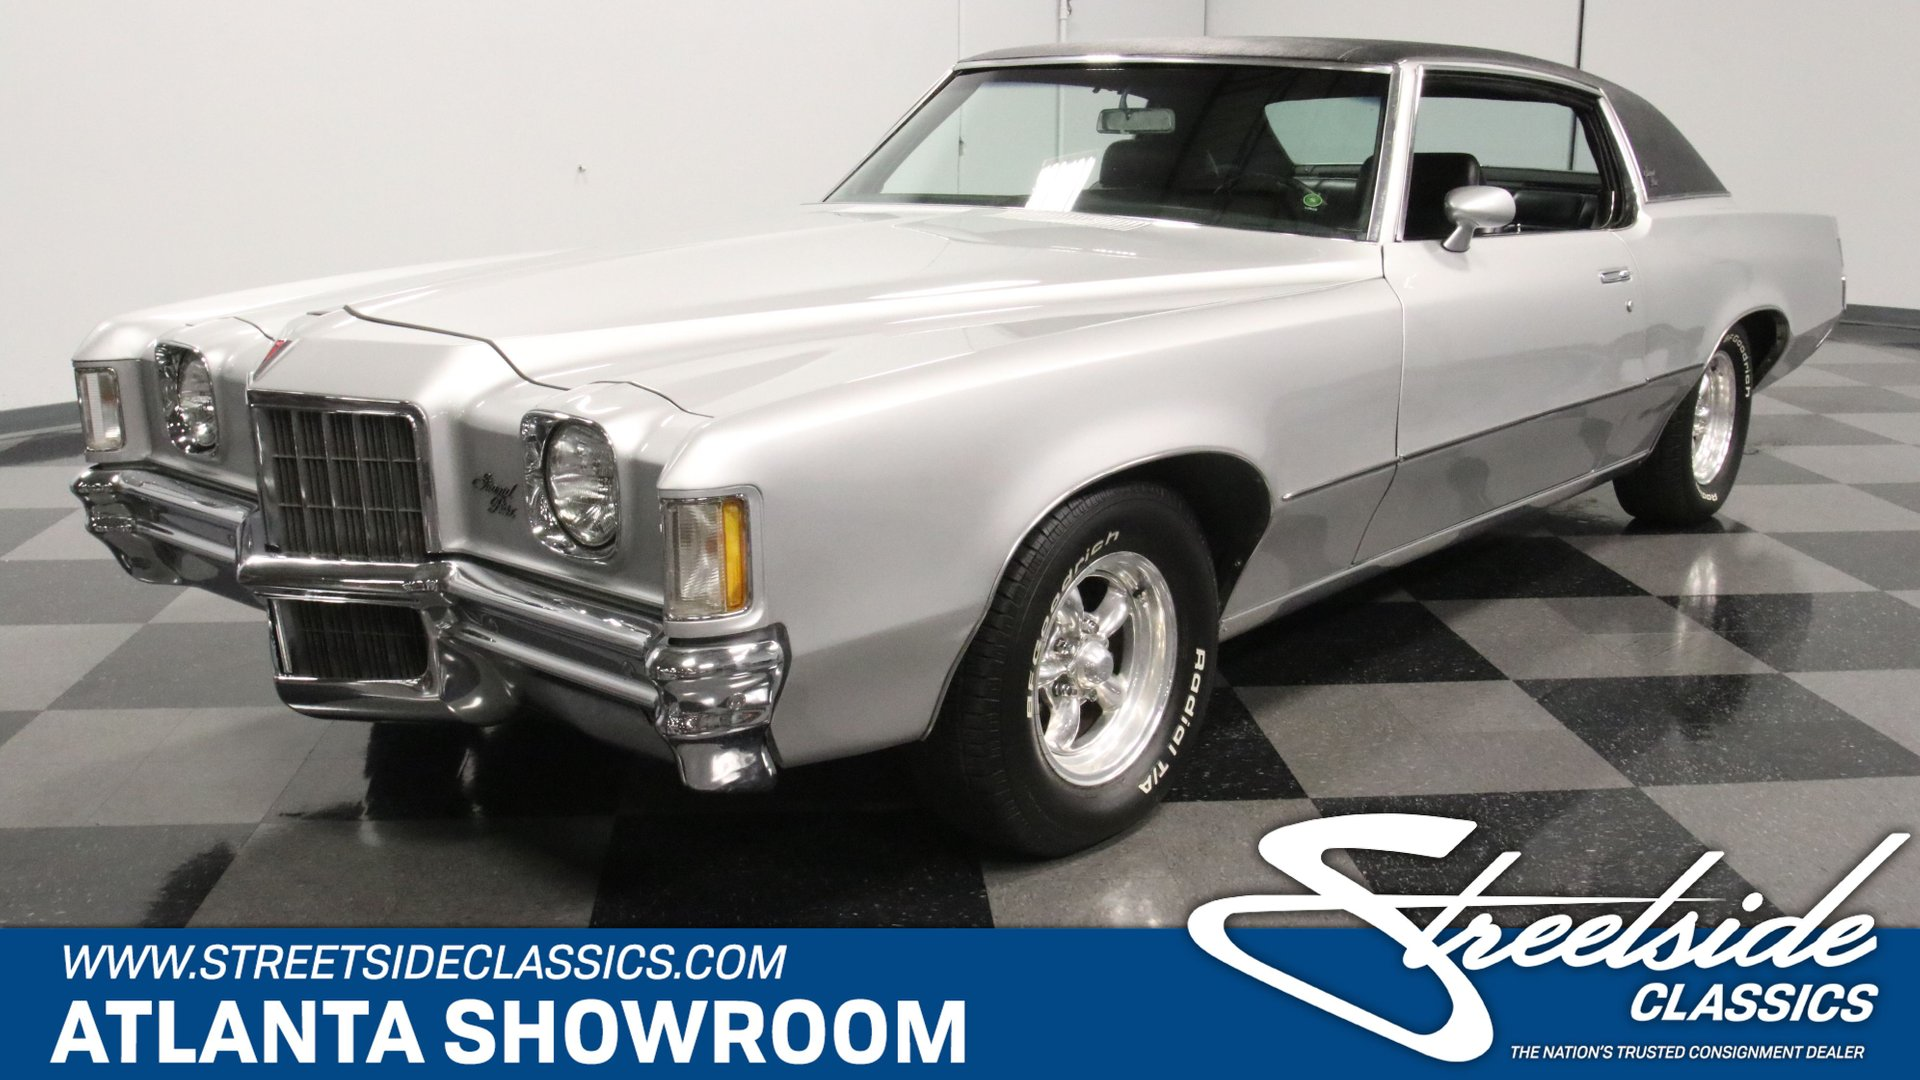 1972 Pontiac Grand Prix Classic Cars For Sale Streetside Classics The Nation S 1 Consignment Dealer